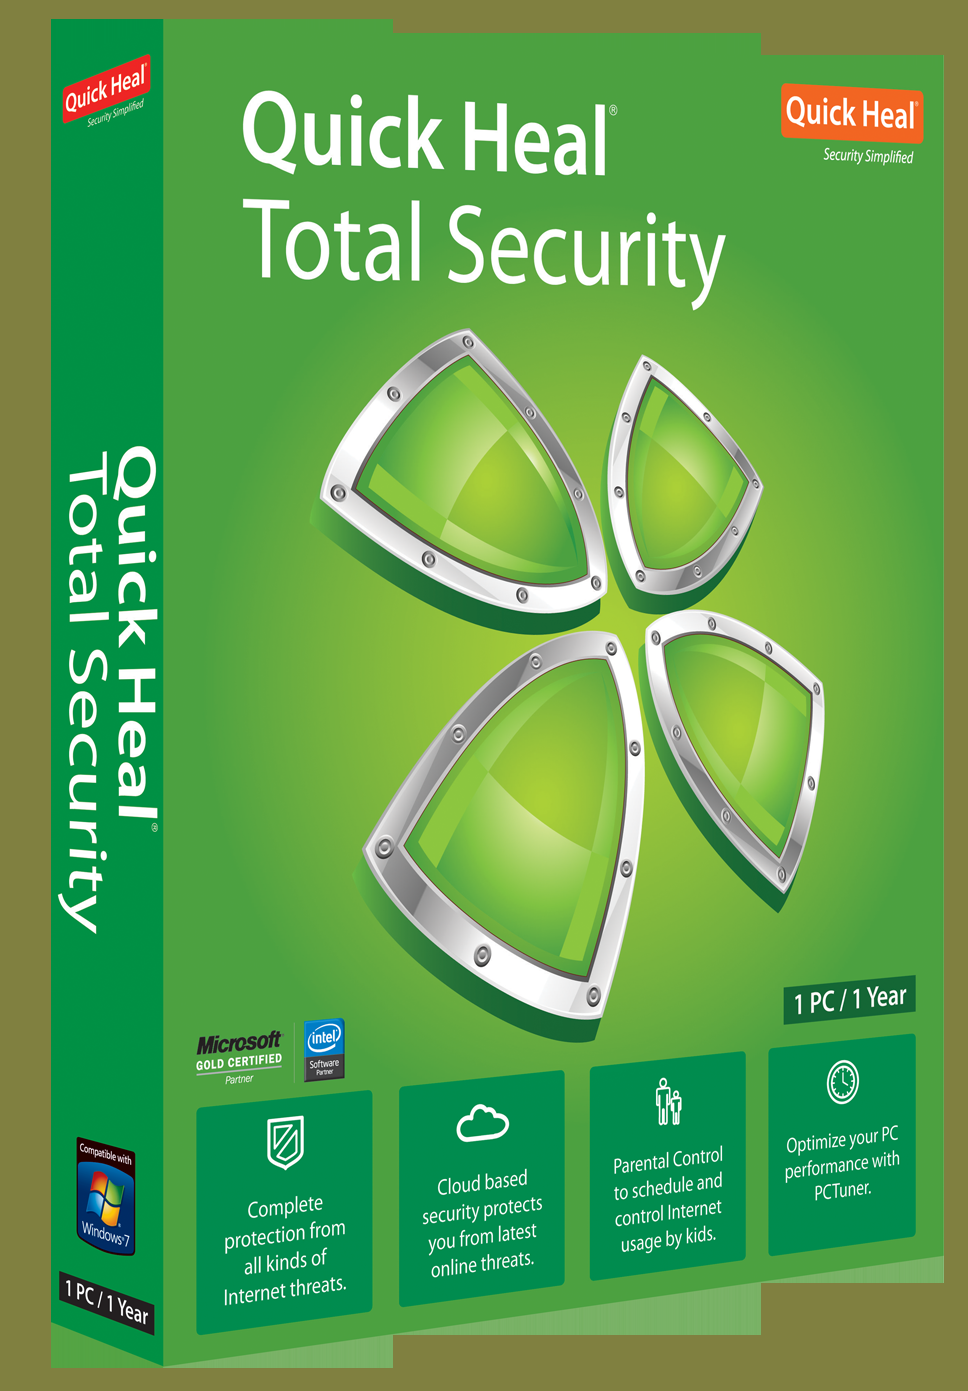 Specifications quick heal antivirus pro protects your laptops and desktops and provides protection against malicious threats